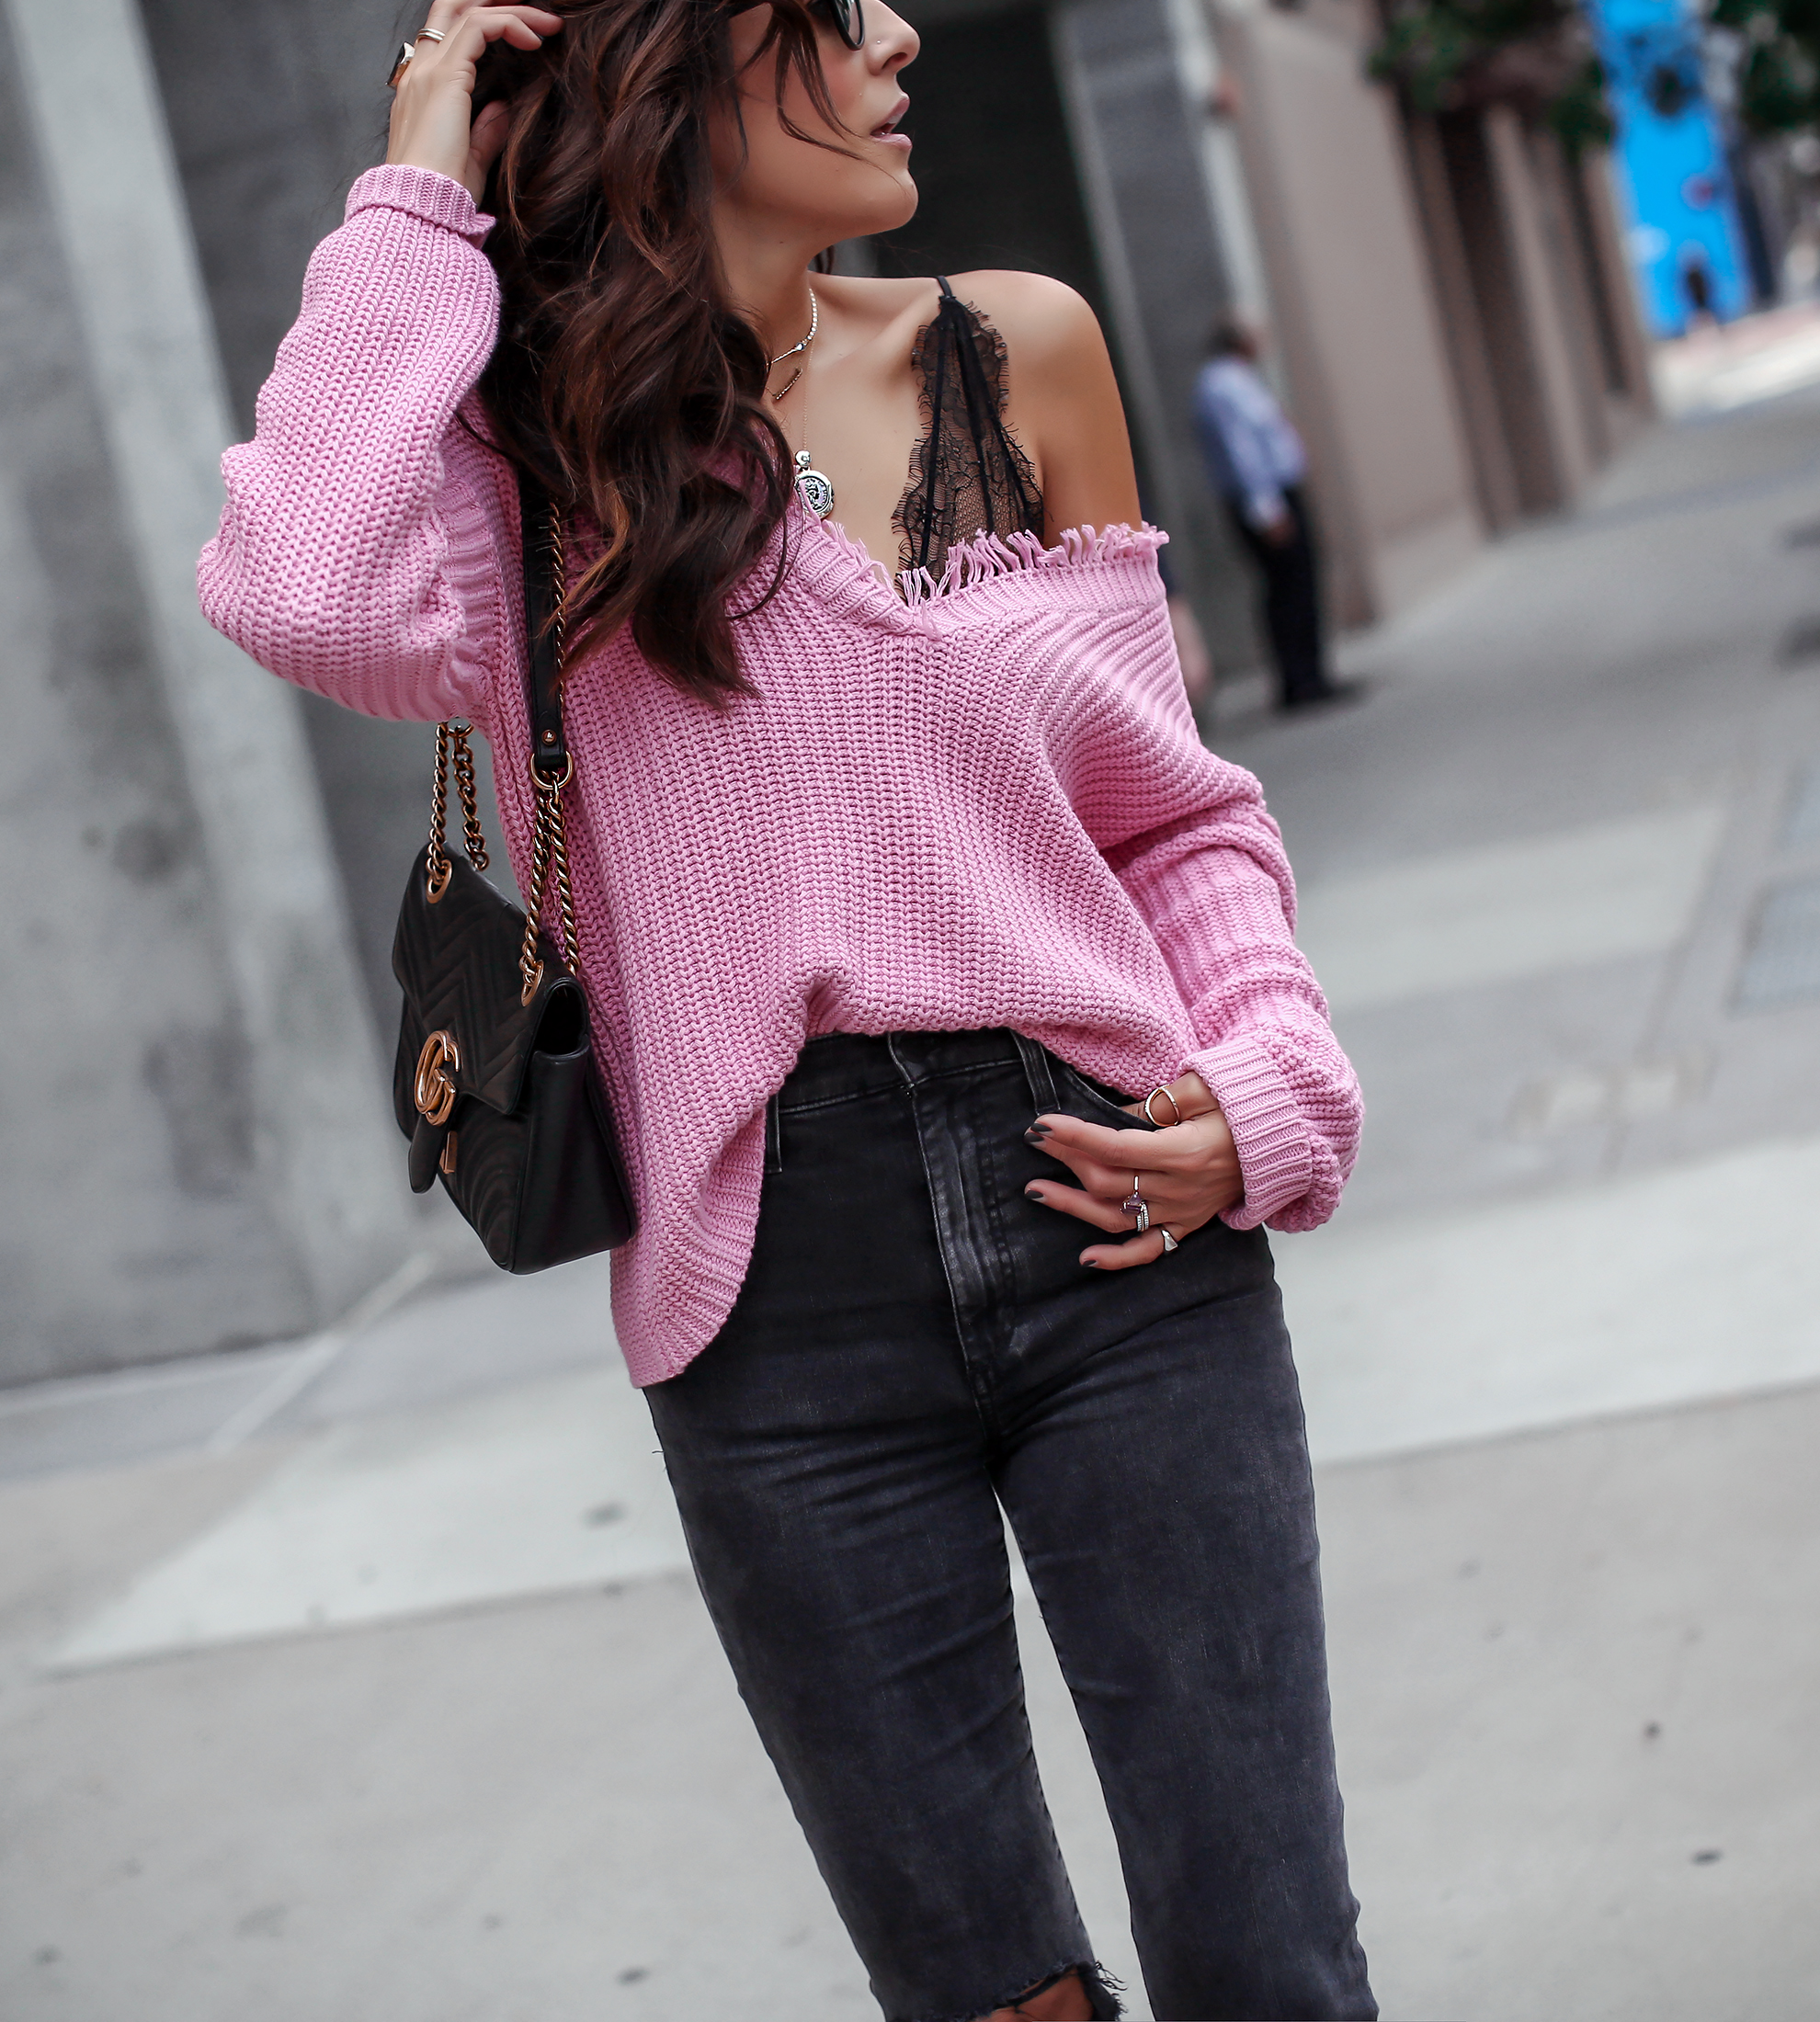 brunette woman in pastel pink sweater